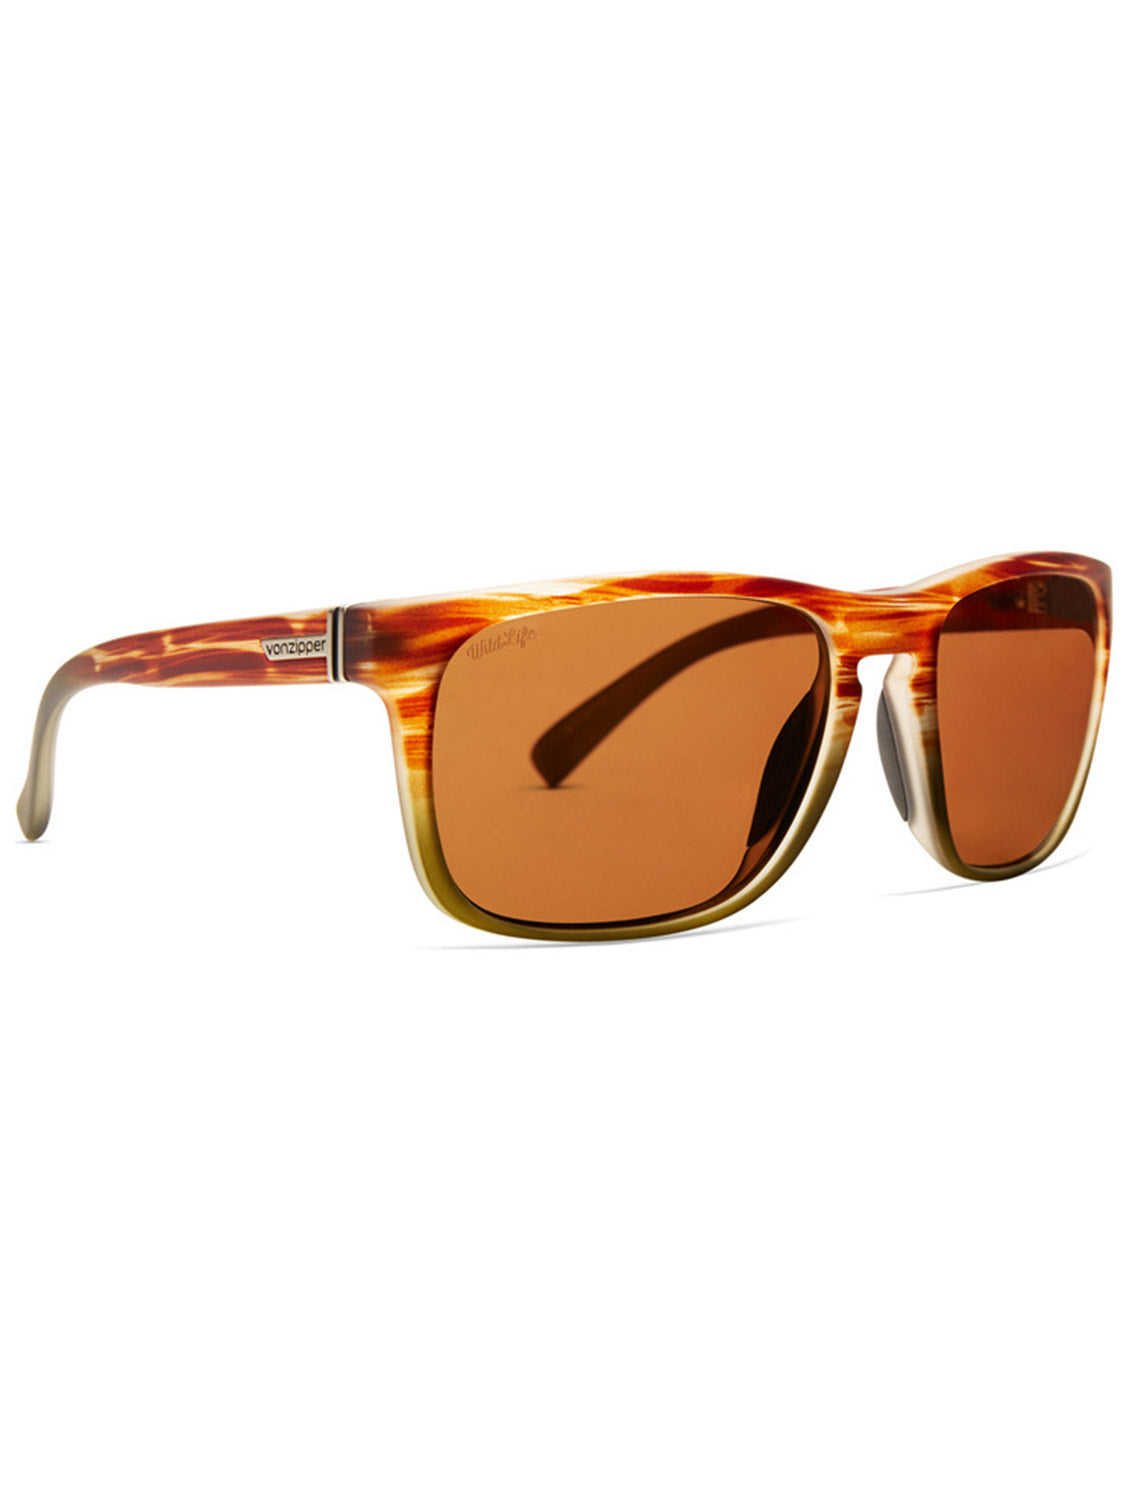 VonZipper Lomax Polarized Sunglasses